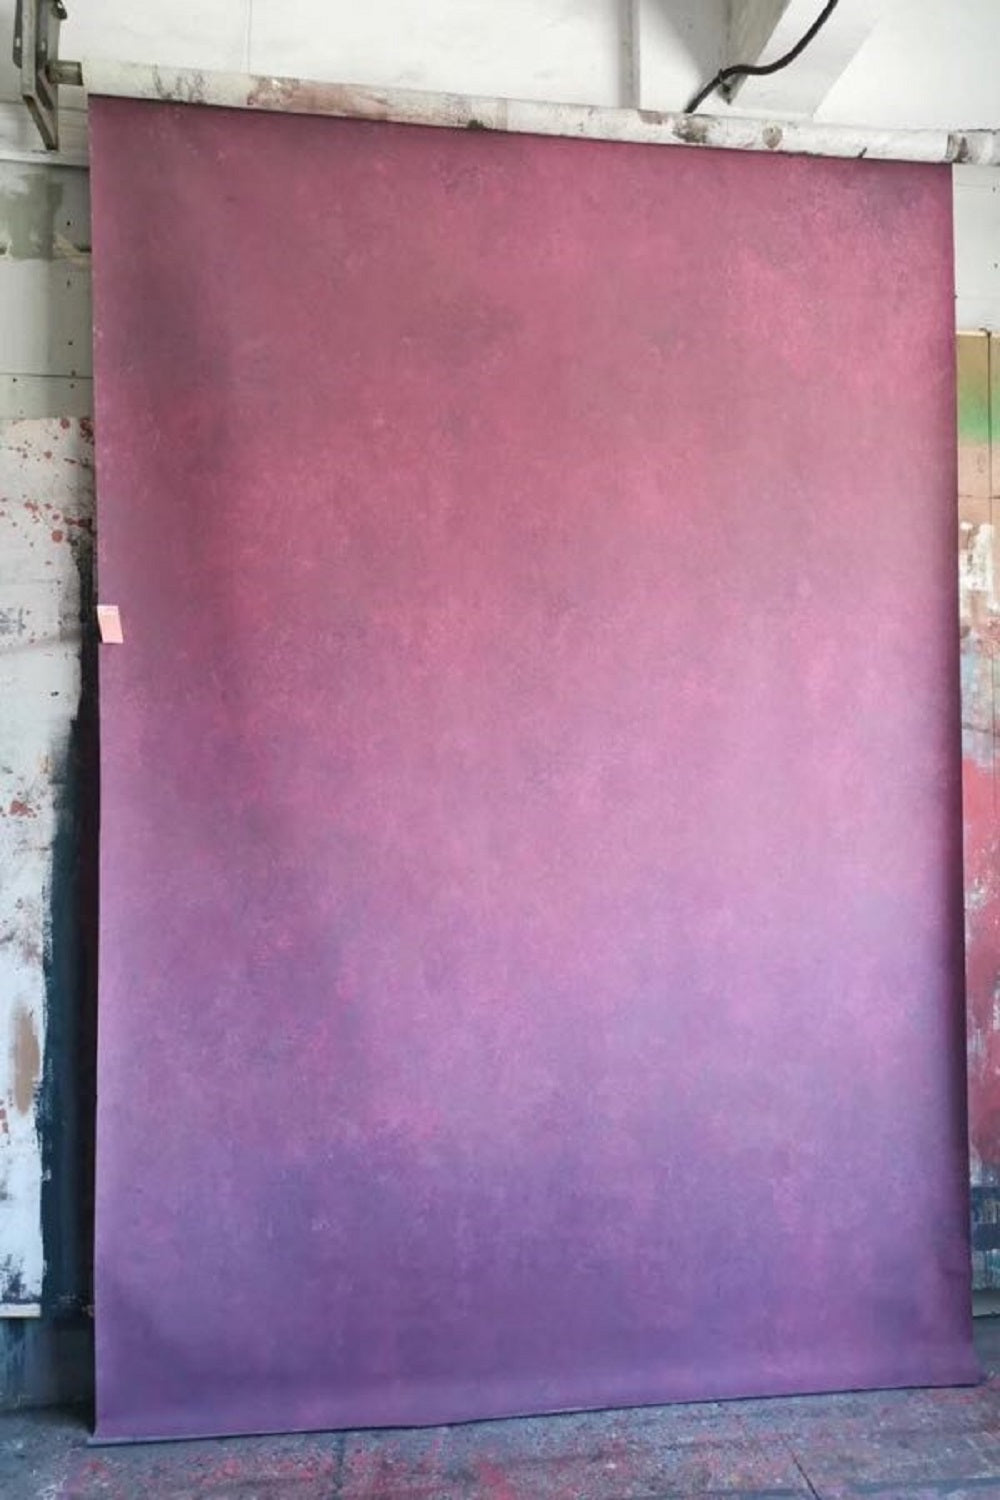 Clotstudio Abstract Gradient Pink Soft Texture Hand Painted Canvas Backdrop #clot 70